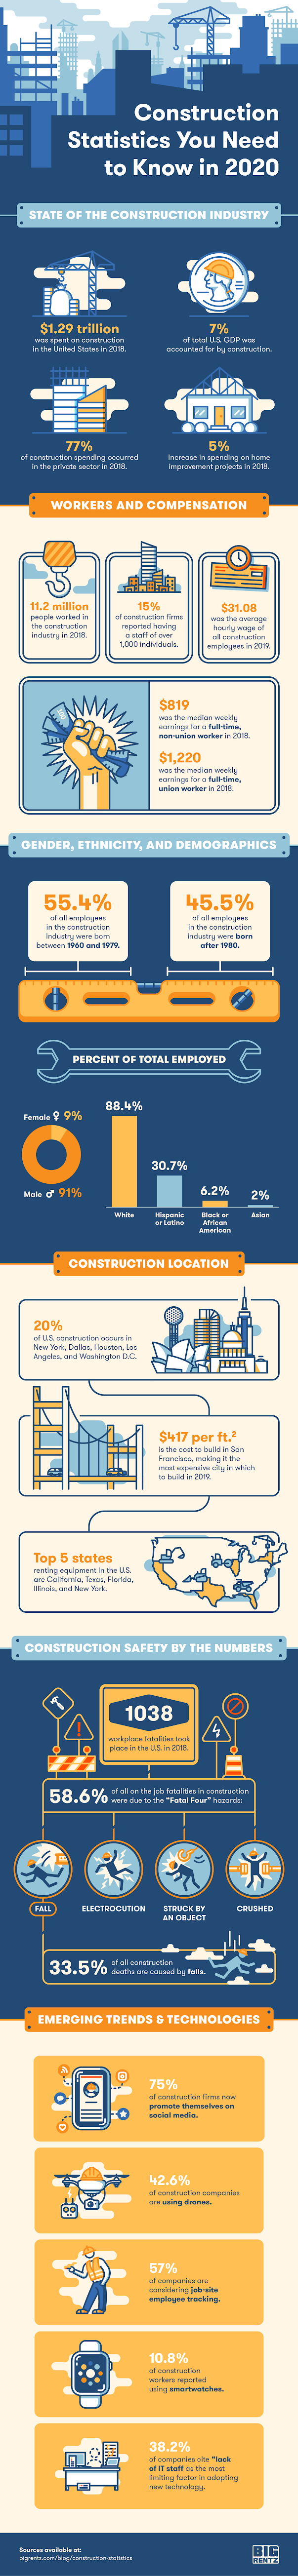 Construction Statistics You Need To Know In 2020 #infographic